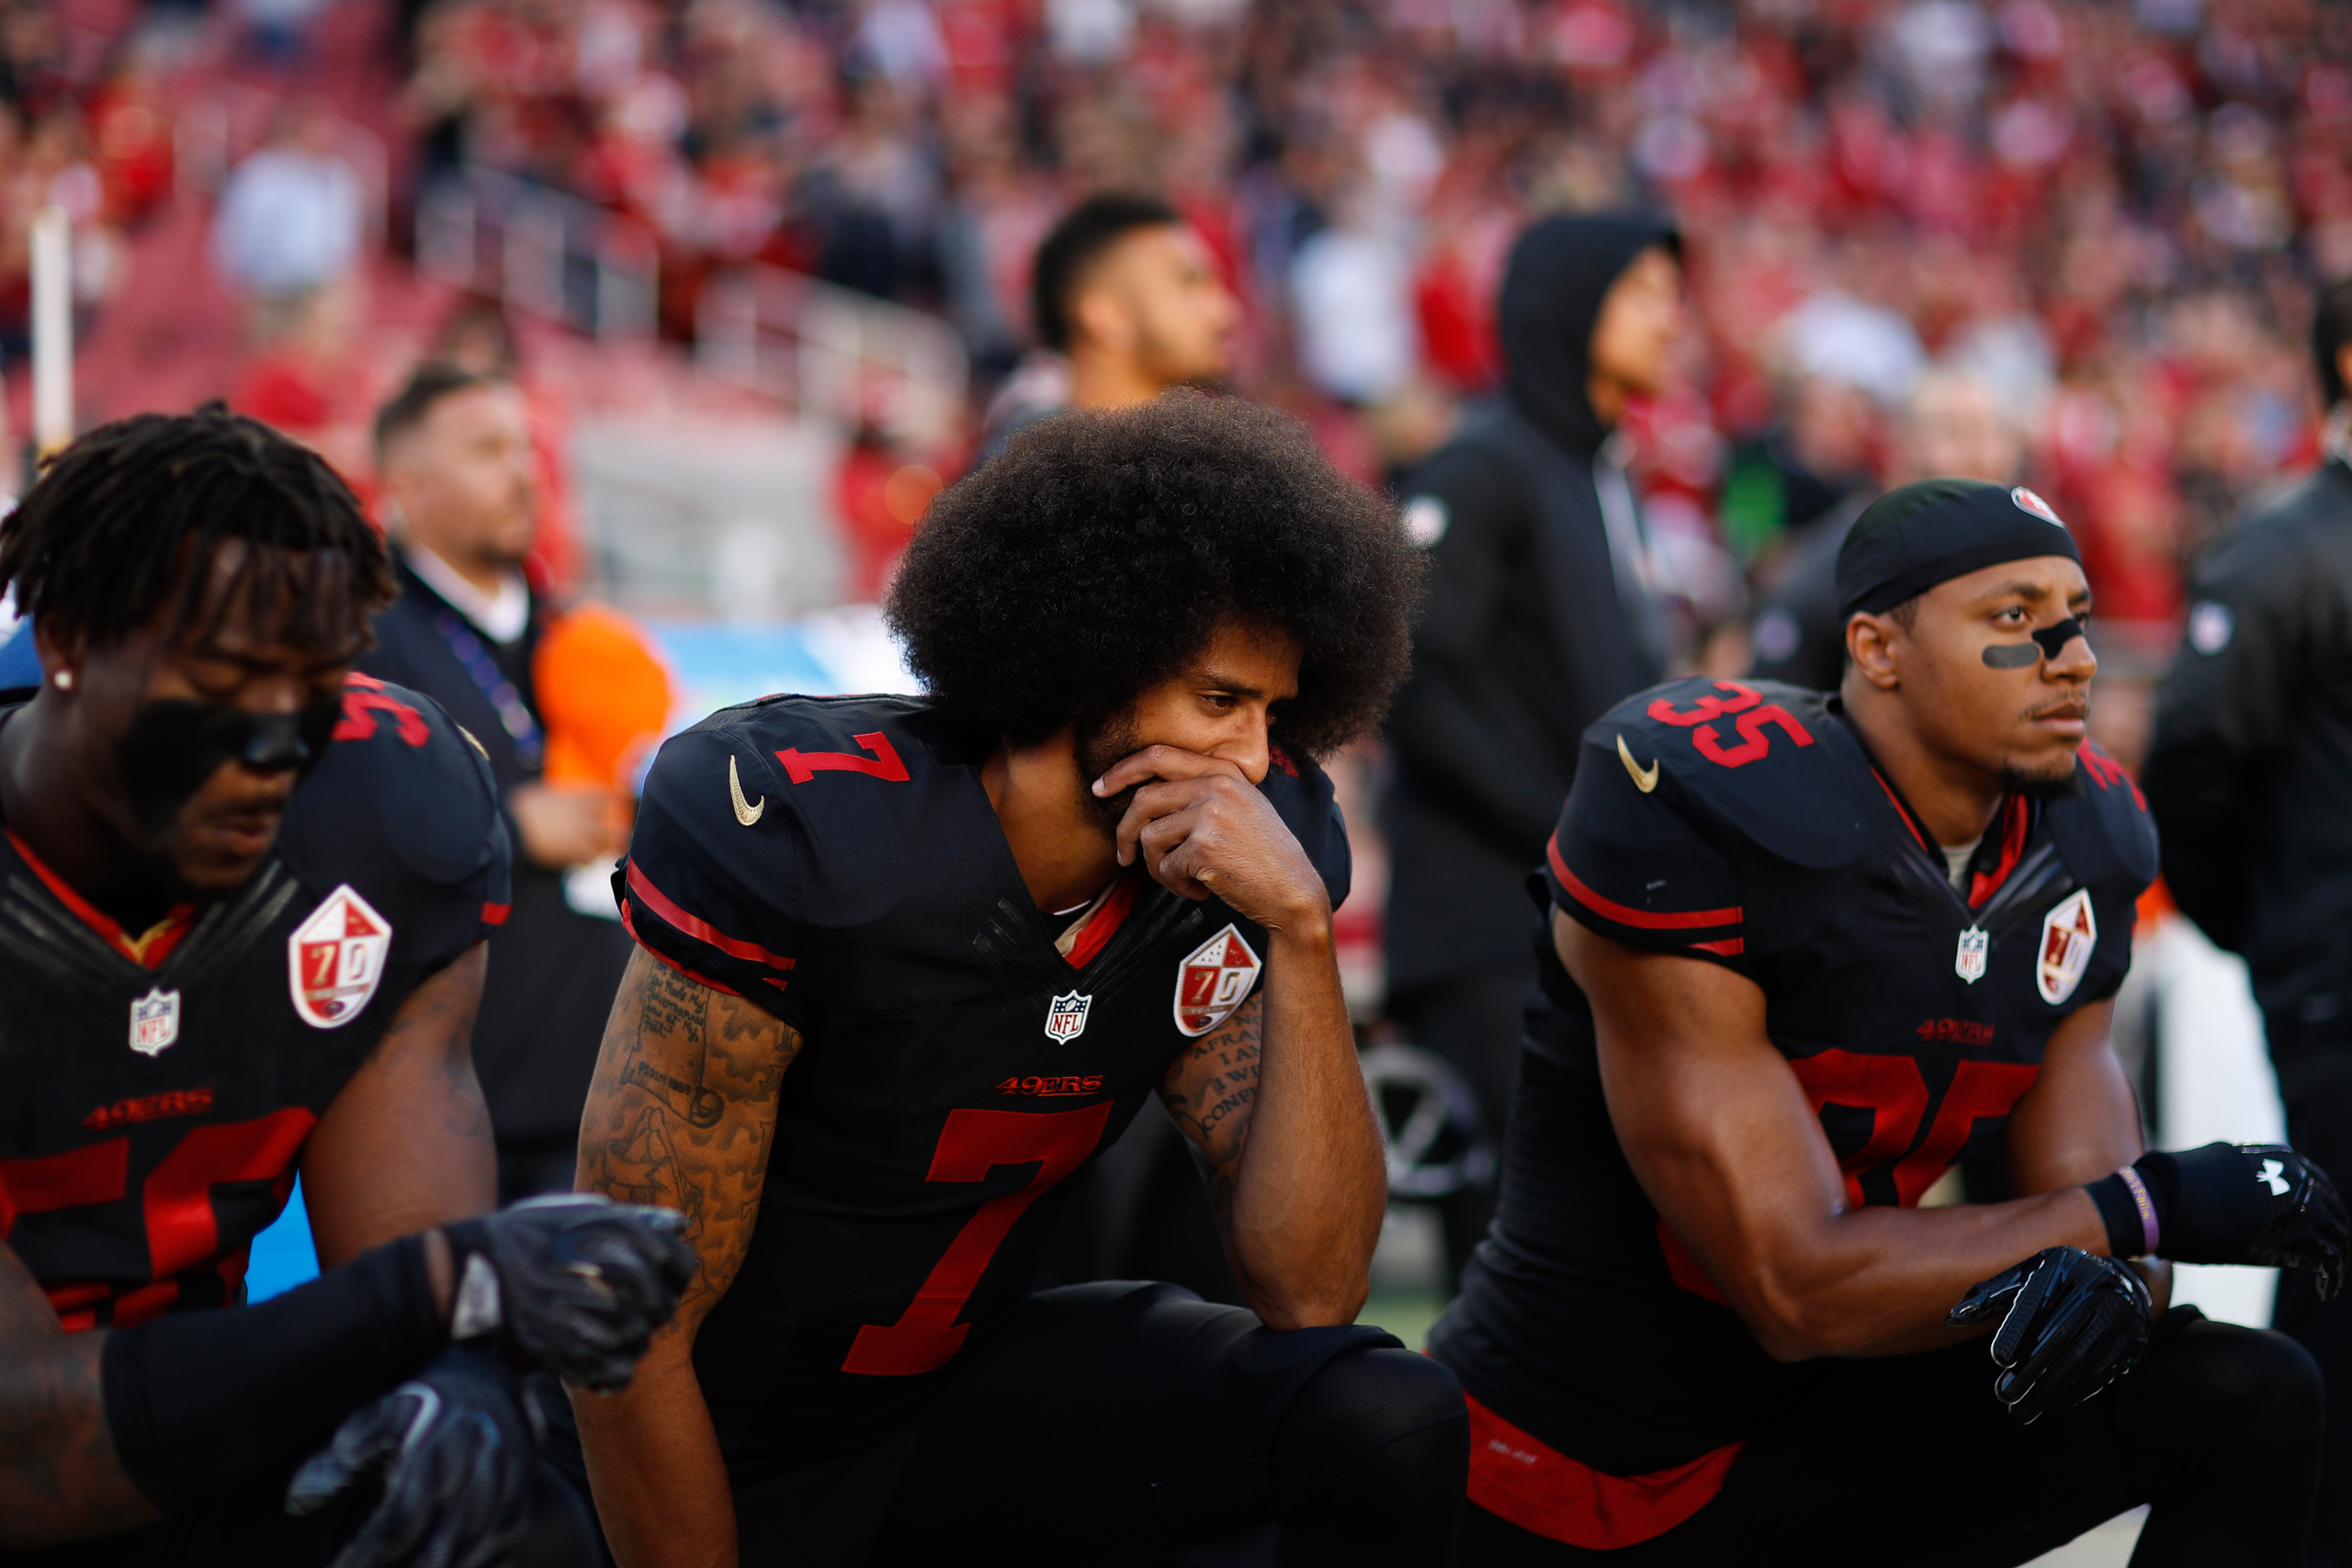 San Francisco 49ers quarterback Colin Kaepernick (7) kneels during the National Anthem prior to an NFL football game against the Arizona Cardinals on Oct. 6, 2016 in Santa Clara, Calif.